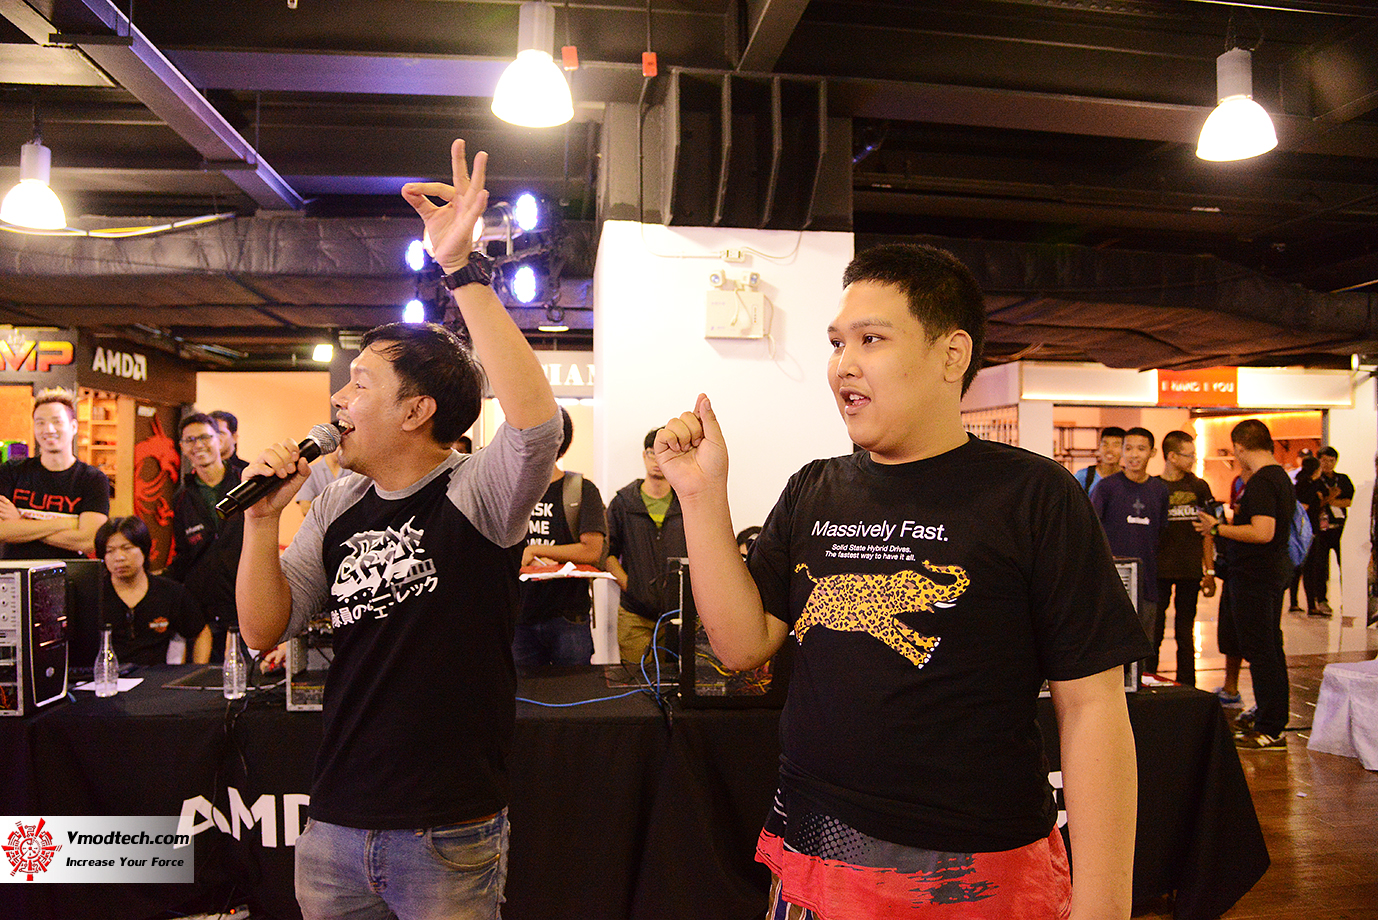 dsc 7261 AMD OMG! Party 2015 (AMD Overclock Modding Gaming Party 2015)